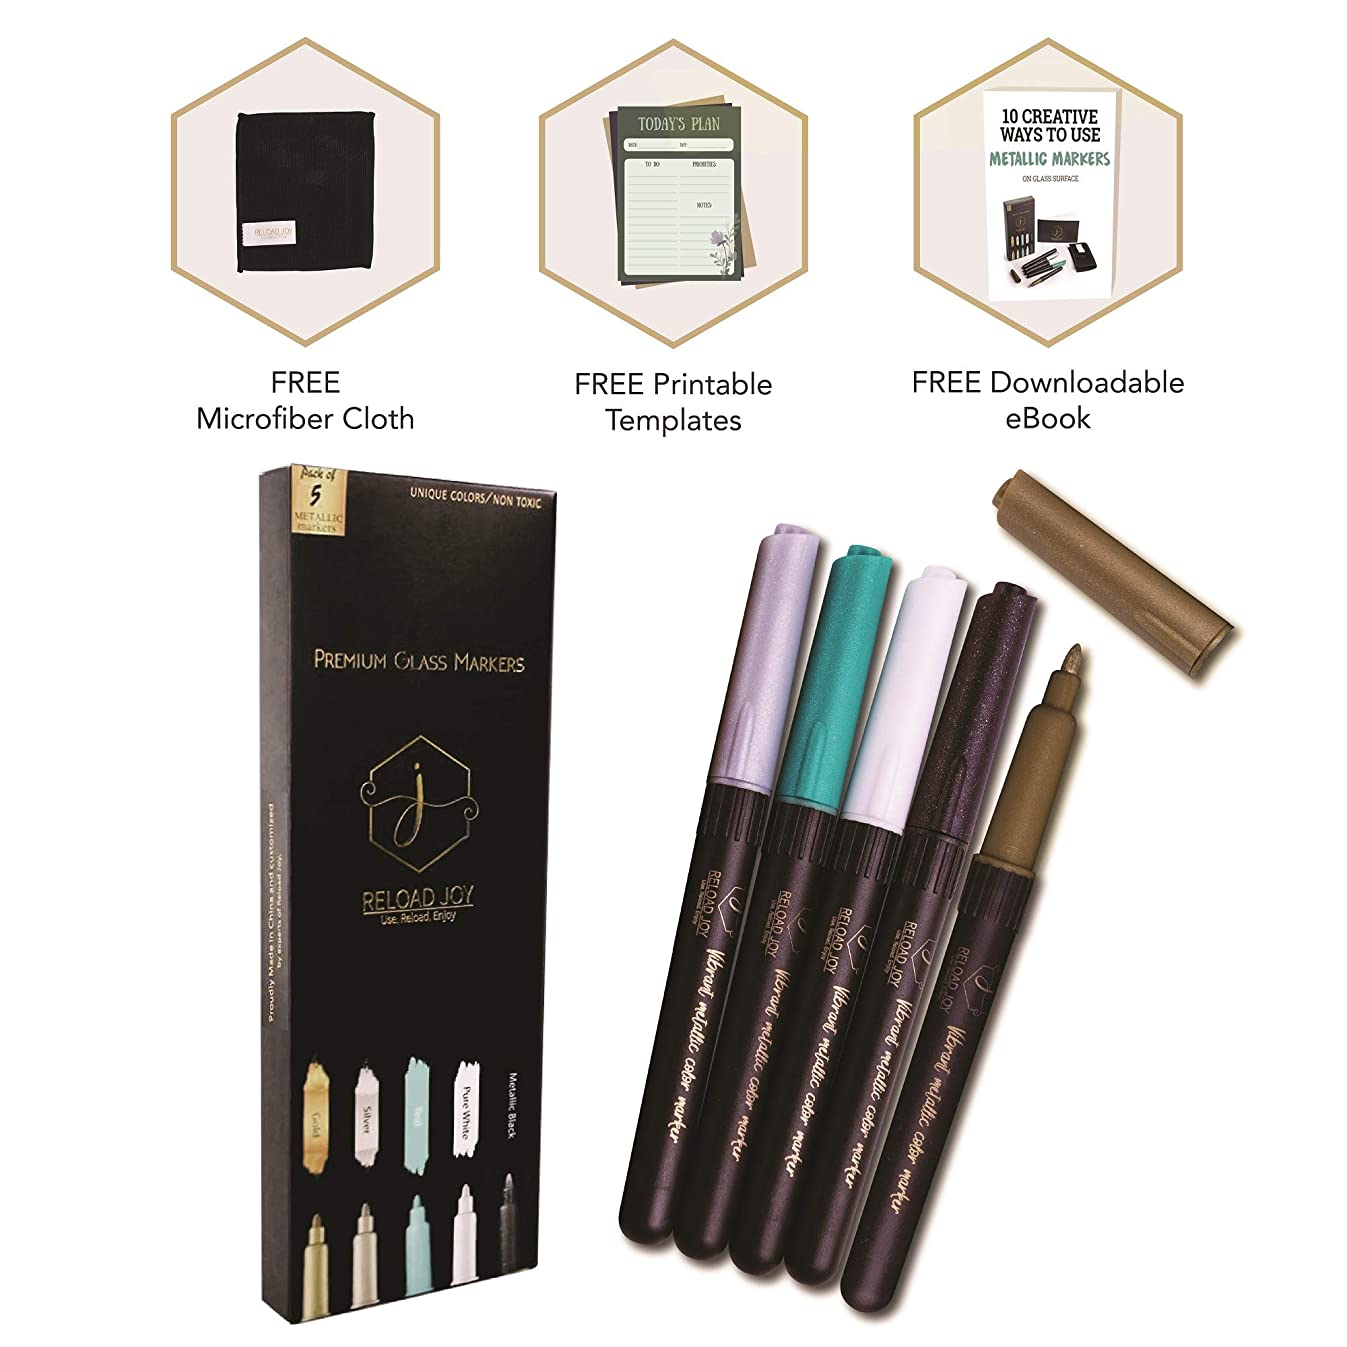 Rich Metallic Markers - 5 Set All Purpose Glass Markers with eBook for Creative Ideas and Microfiber Cleaning Cloth - No Smirk or Smudge Wine Markers - Free Printable Templates for Reloading your Joy